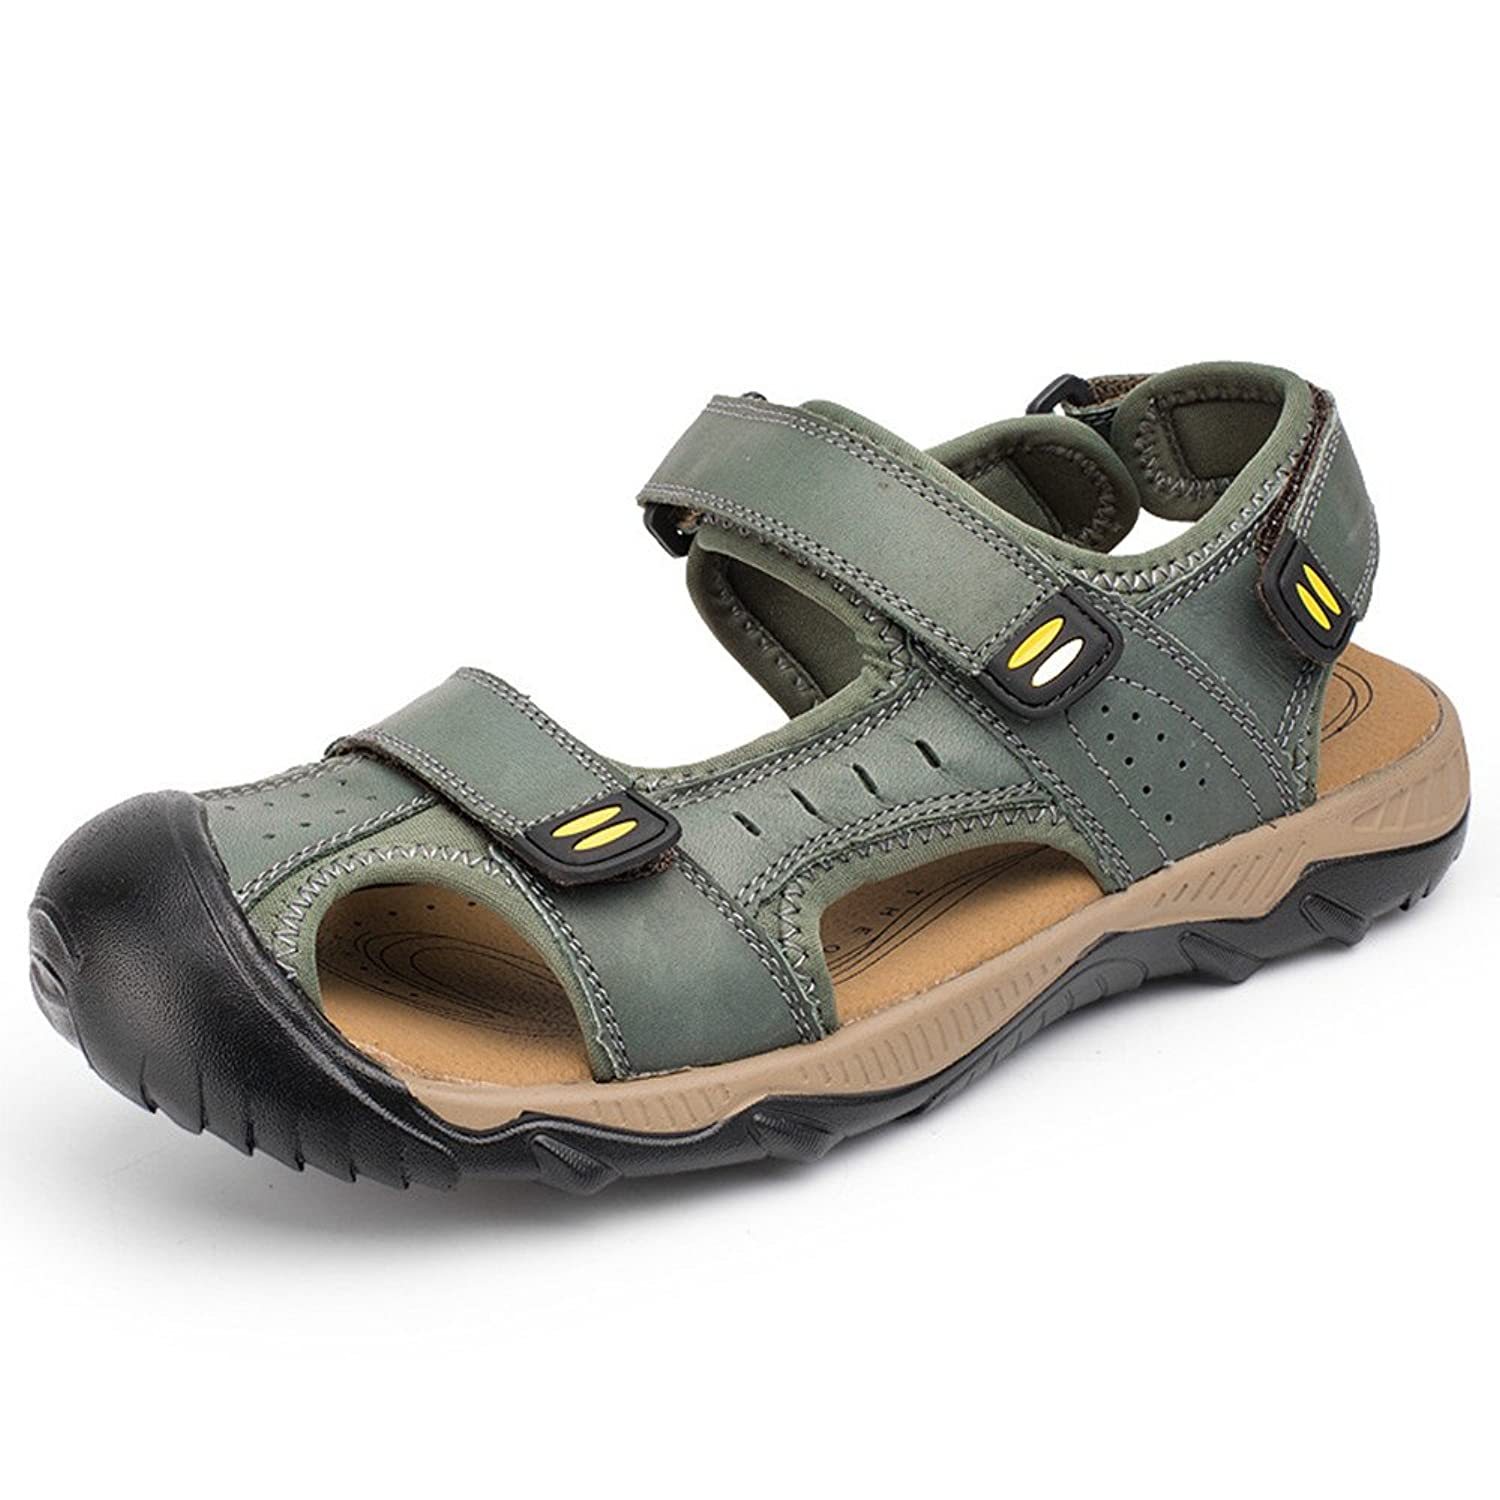 0b03e705bef5a ENFUSO Mens Genuine Leather Walking Hiking Athletic Sandal ...